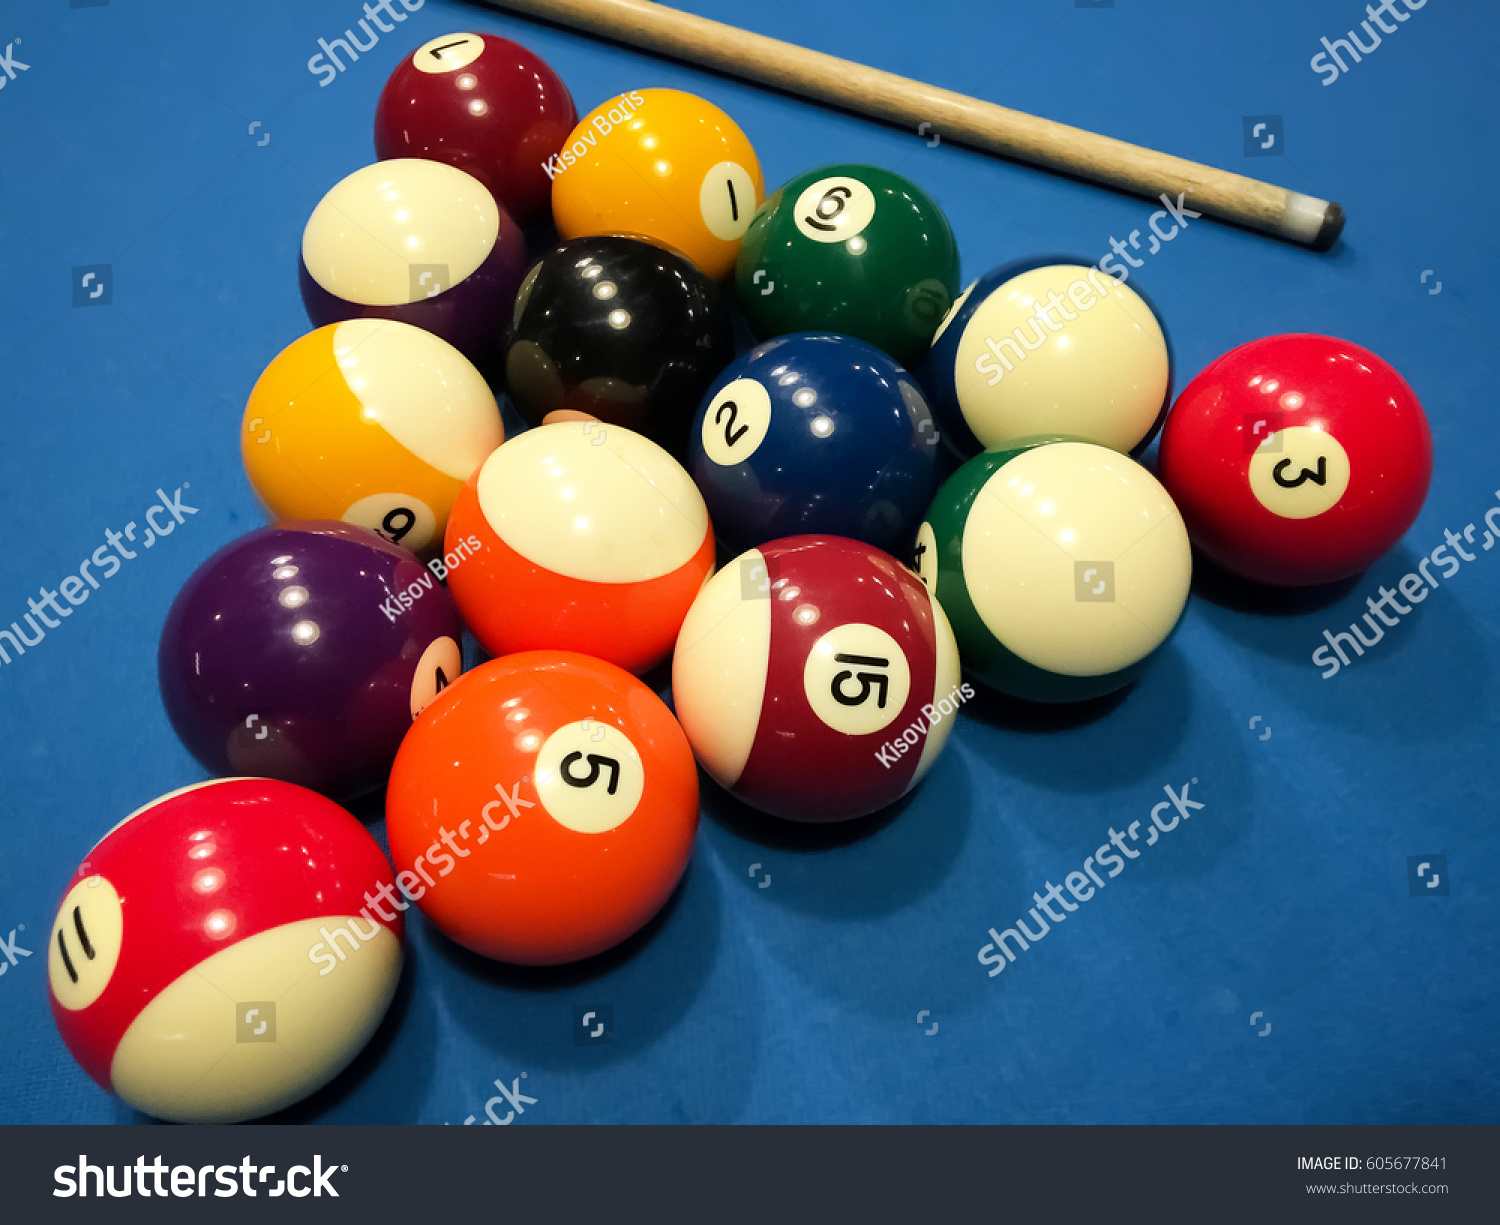 specialize widely resin balls to in amazing nearly are belgium material started worlds pool used also other is sa the world company percent produces around phenolic table billiard saluc of s most